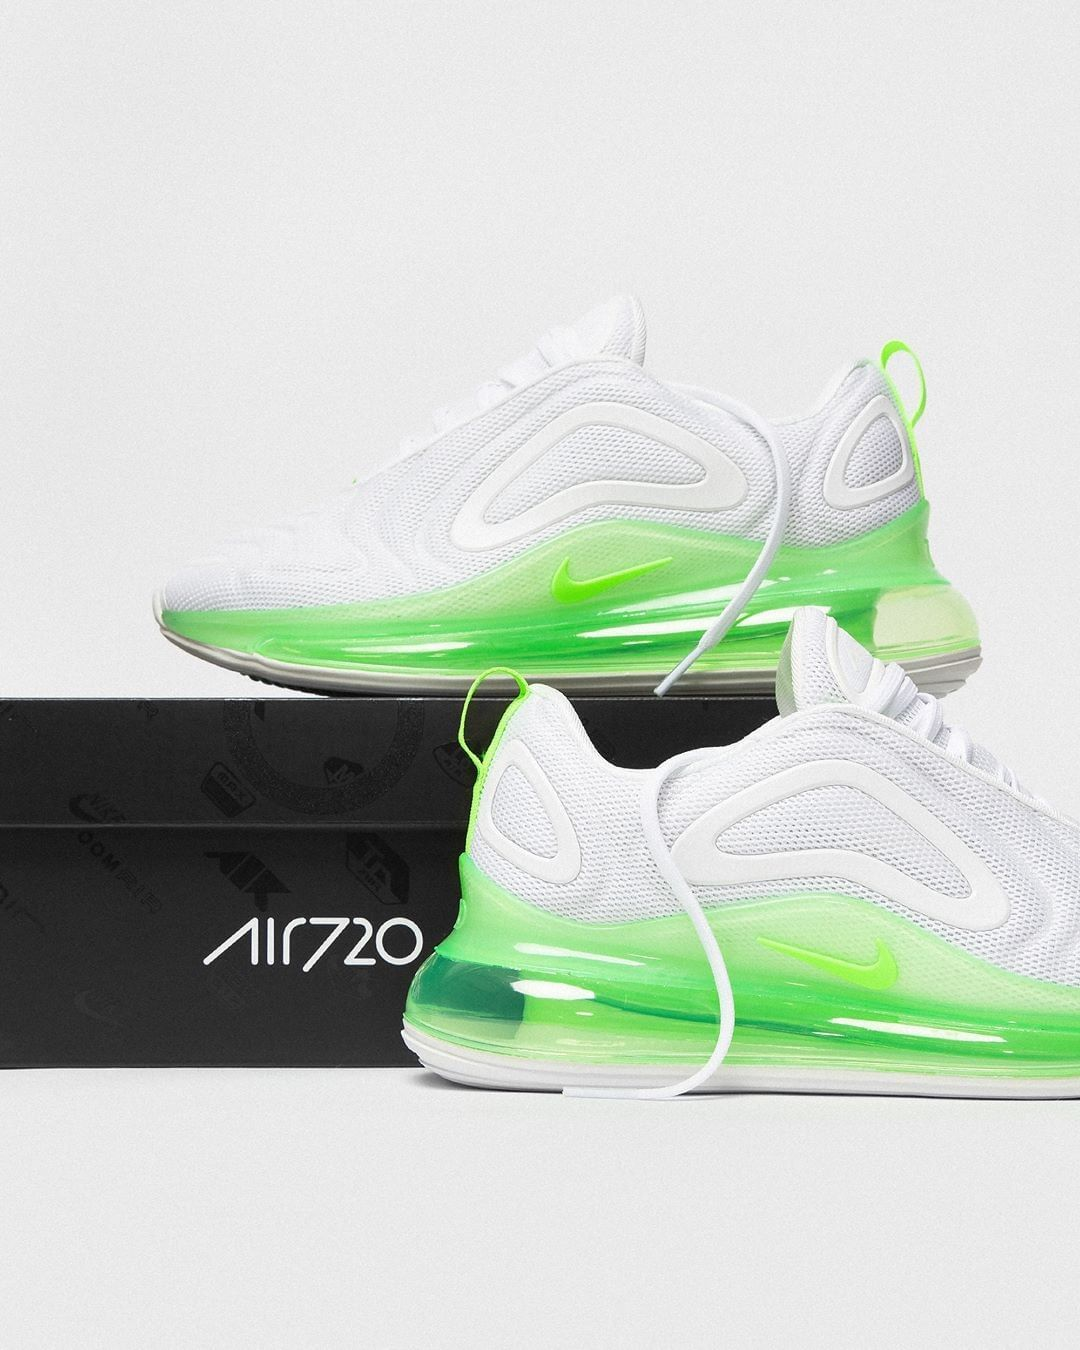 New Nike Wmns Air Max 720 Slime All Day Click To Shop Airmax Airmax720 Airmaxlove Sneakers Fashion Nike Air Max Best Sneakers